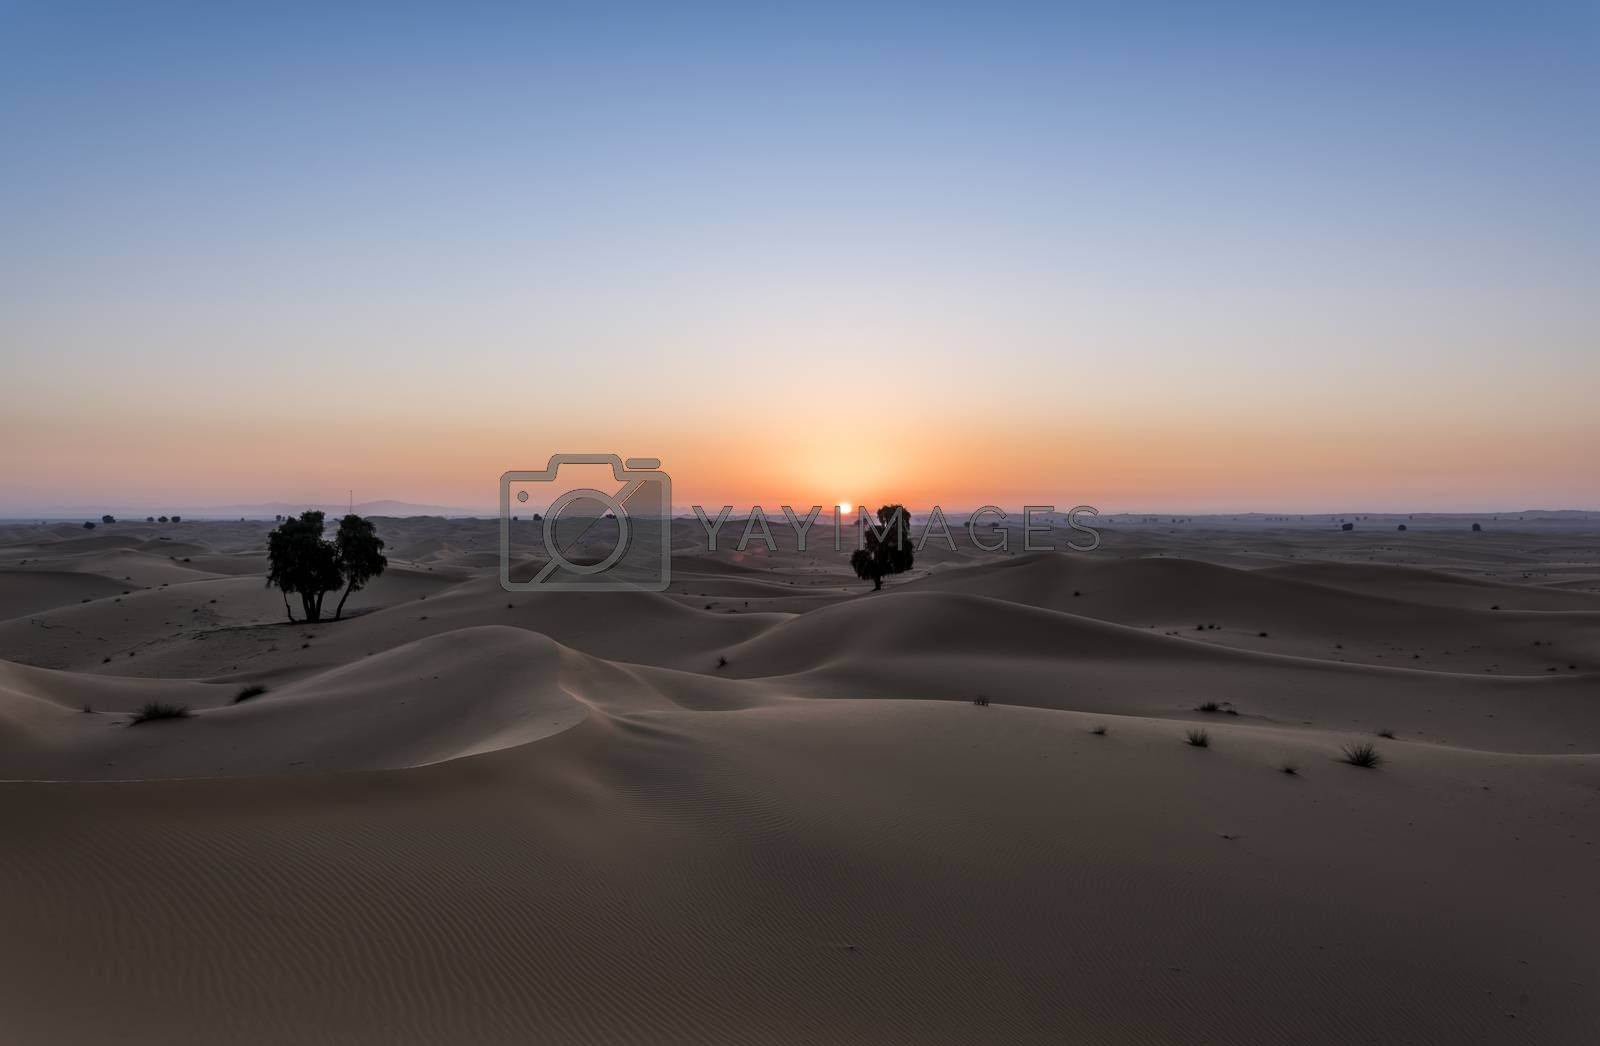 Sun rising above the desert of dunes, Dubai Emirates, United Arab Emirates